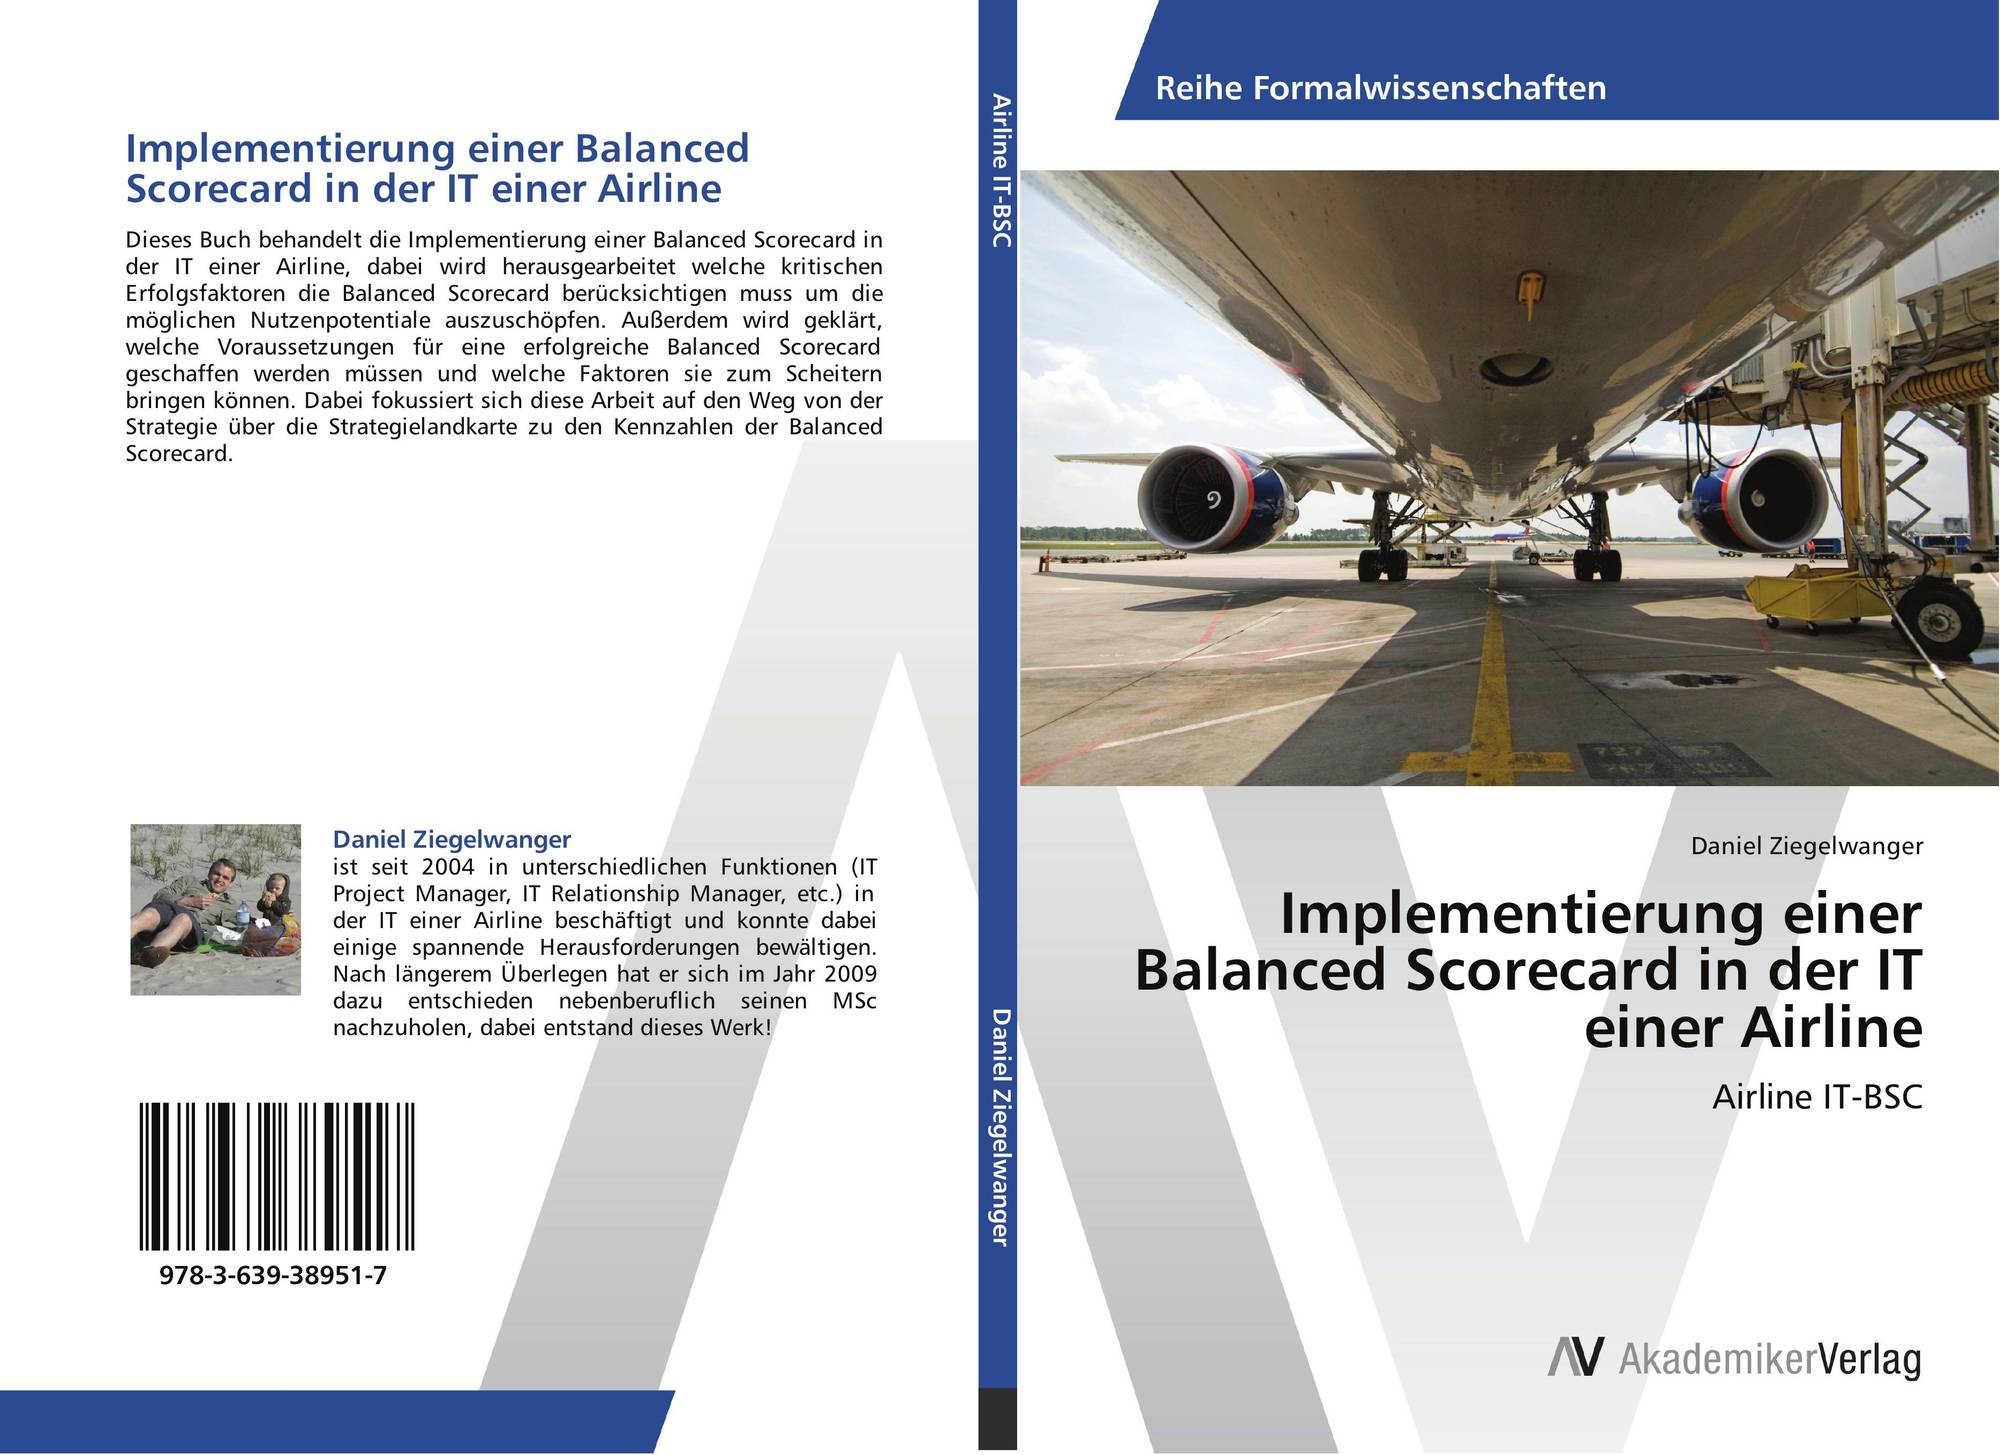 malaysian airline balanced score card Iii guide to a balanced scorecard:performance management methodology moving from performance measurement to performance management table of contents.